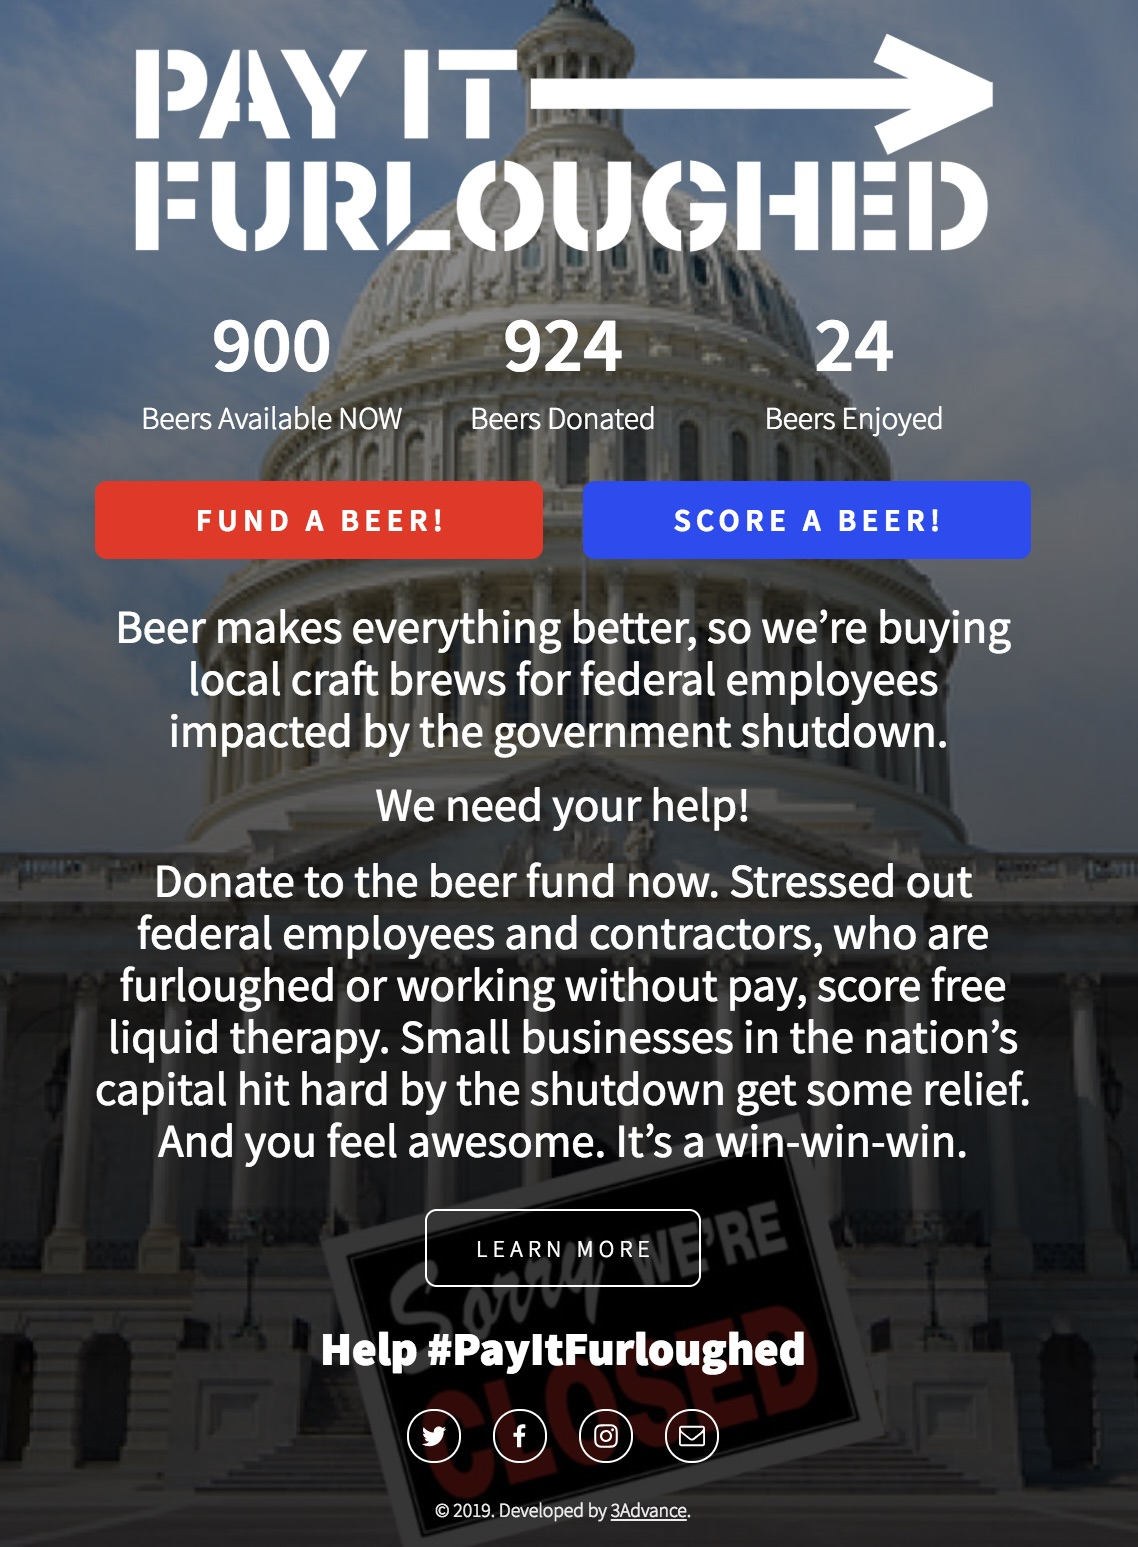 Pay It Furloughed website lets you buy a beer for a federal worker impacted by the shutdown...with participating restaurants joining soon